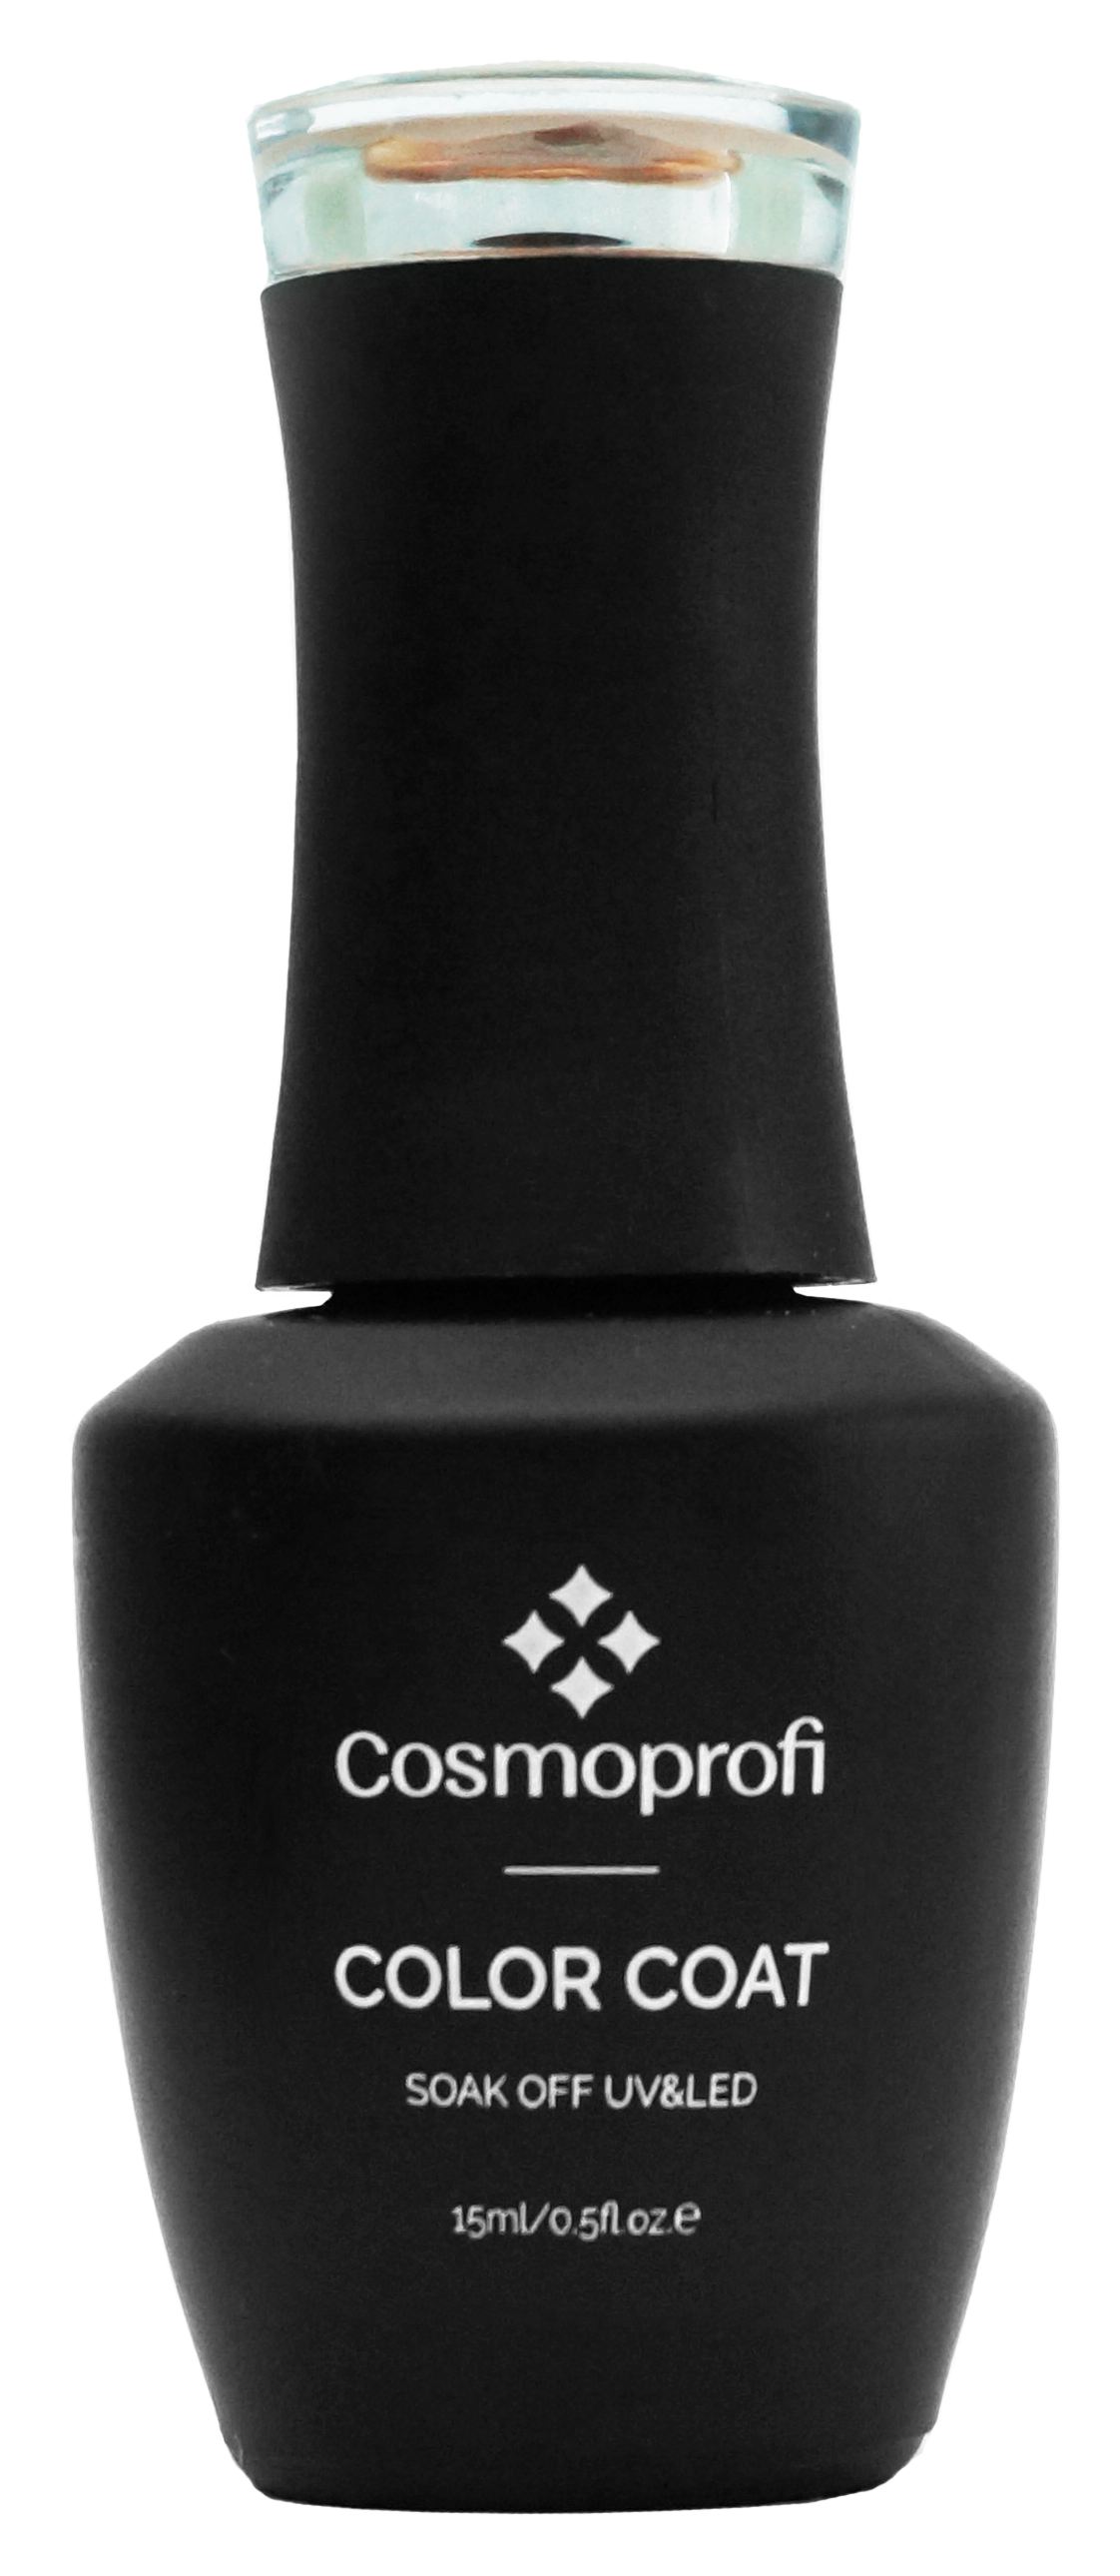 Гель-лак Cosmoprofi, Color coat № 159, 15 мл